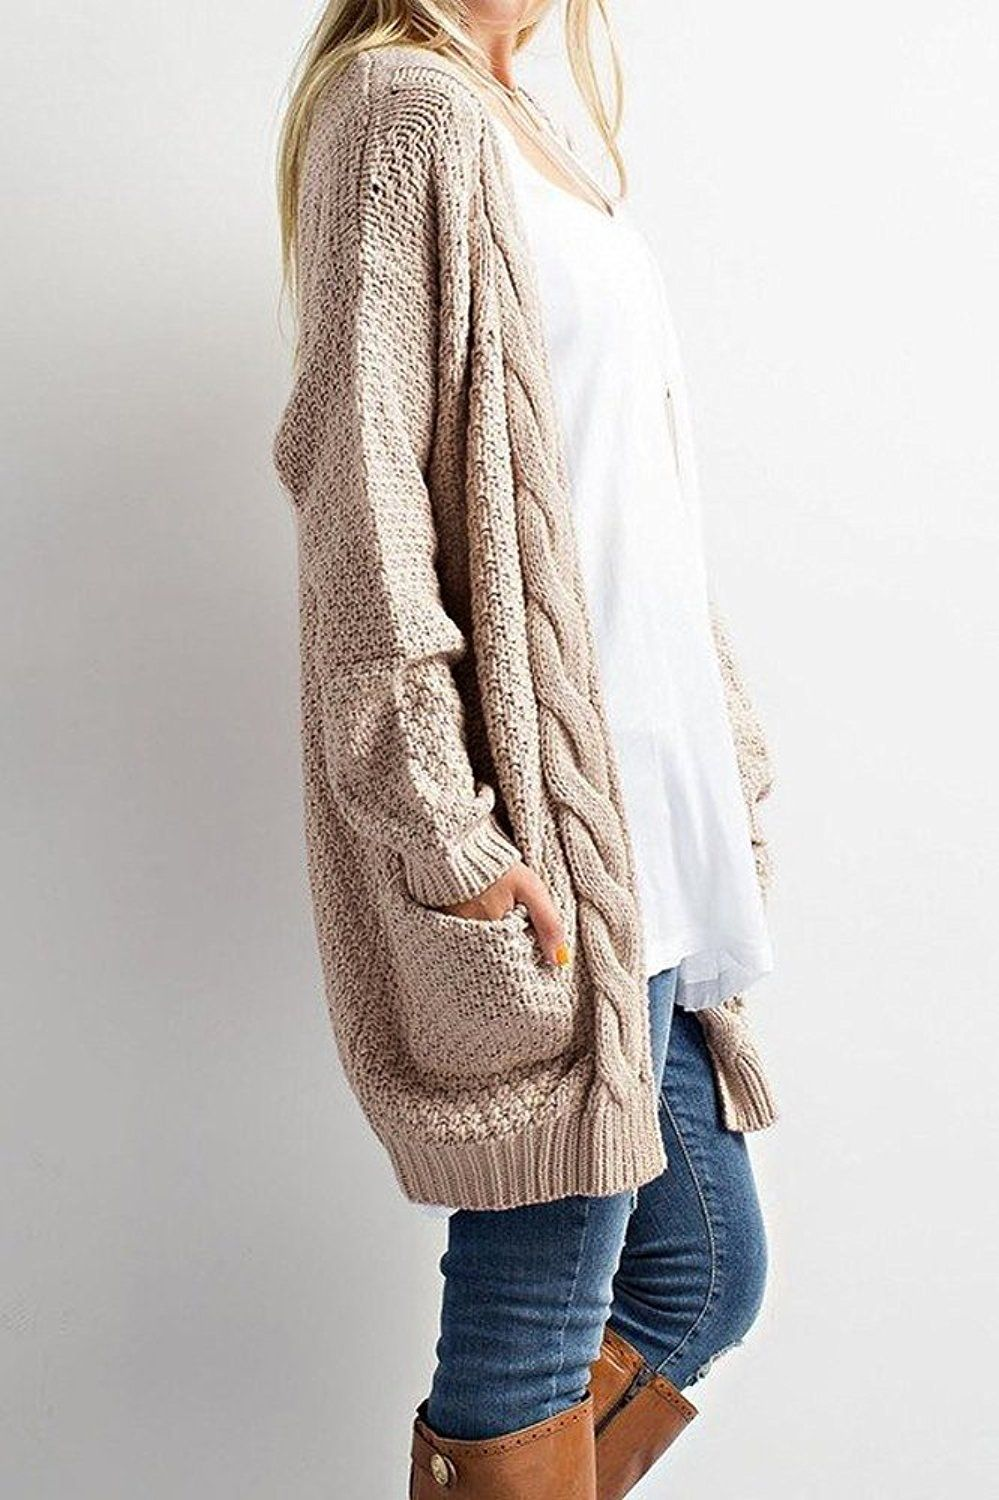 Winter Outfits Warm | Cable knit sweater cardigan, Fashion